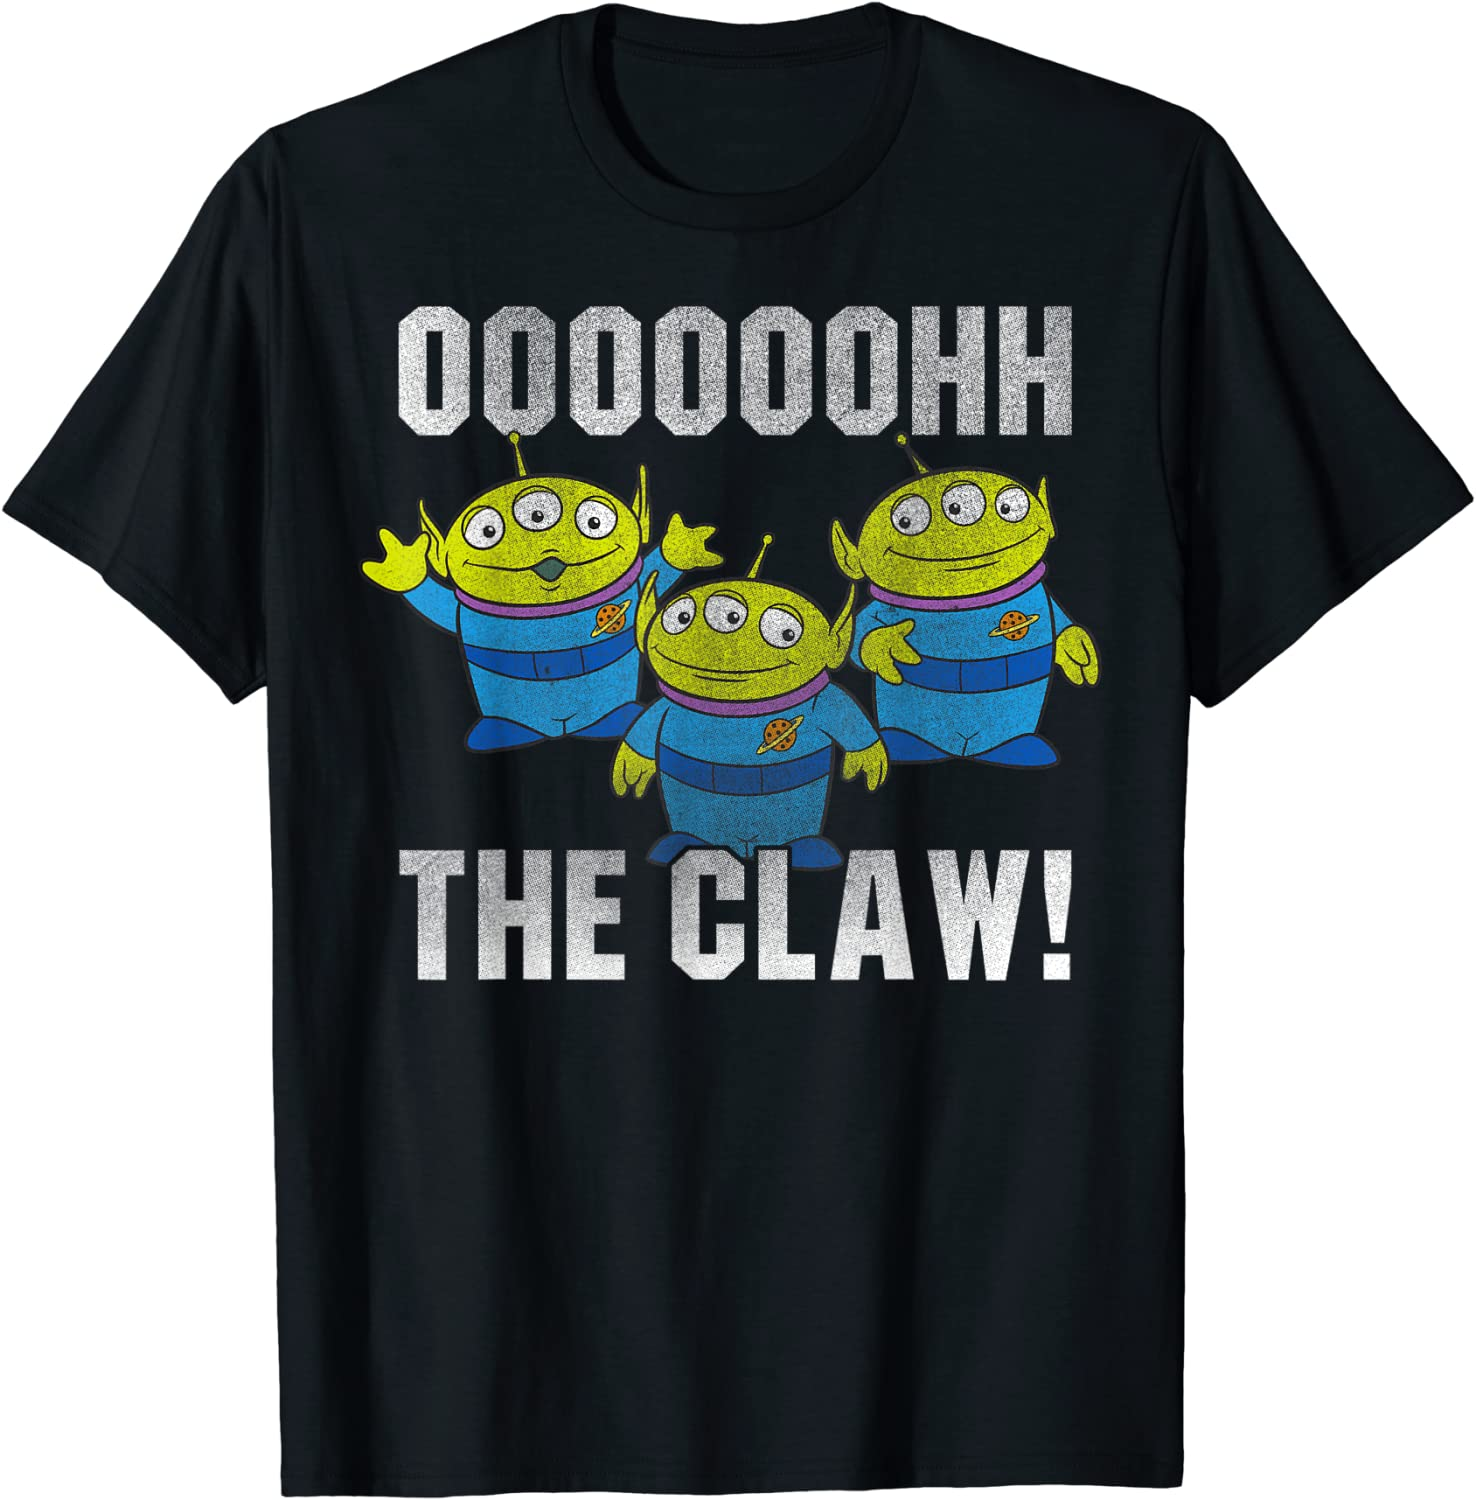 Disney Pixar Toy Story Alien The Claw Distressed T-Shirt T-Shirt